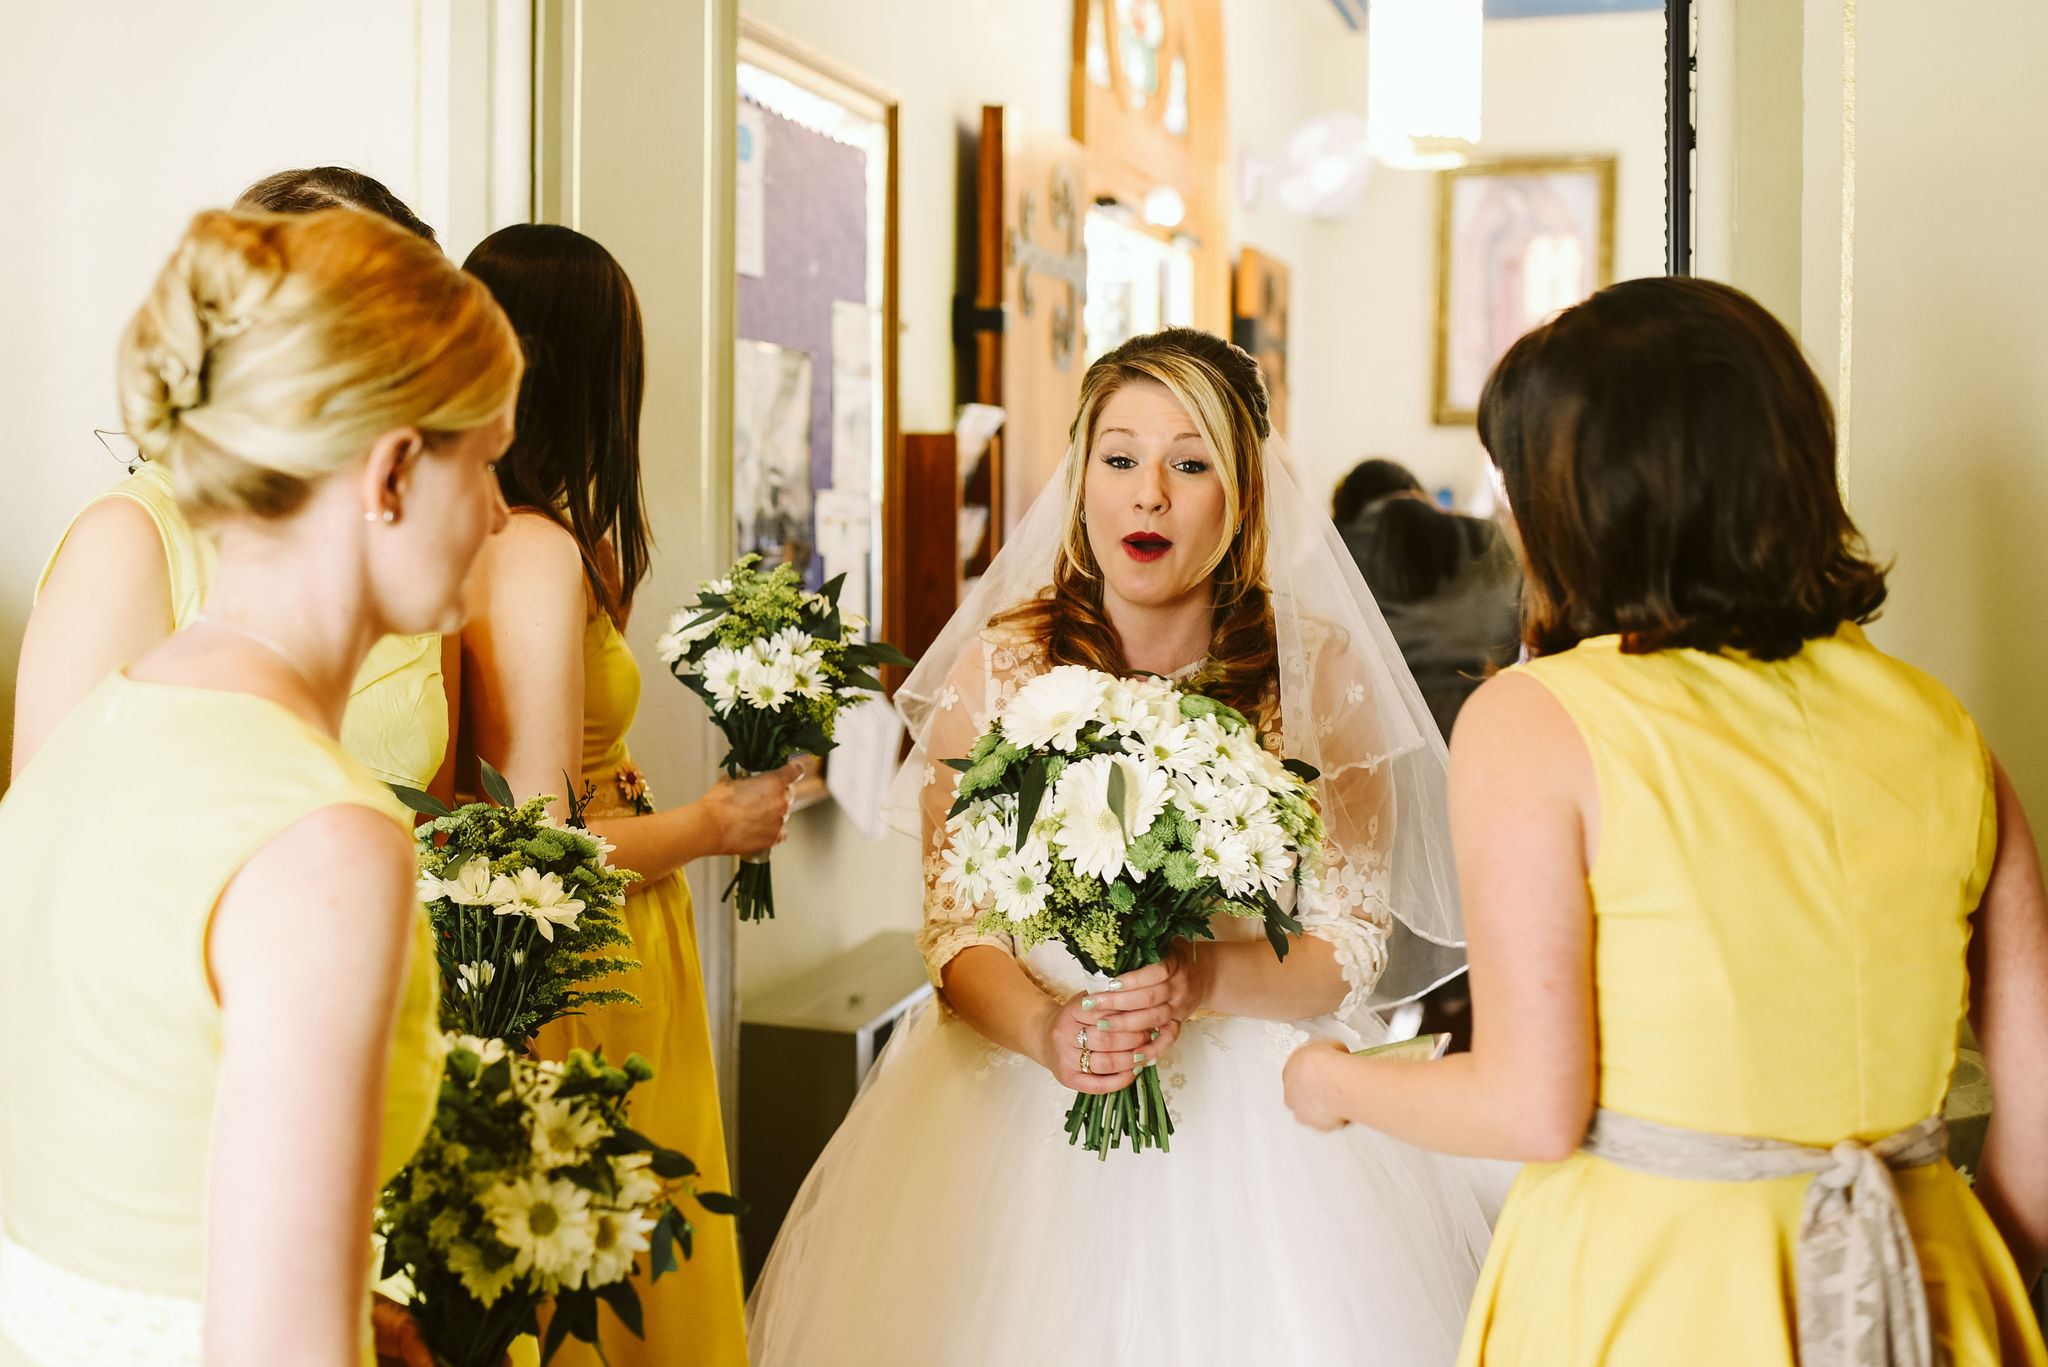 Baltimore, Church Wedding, Maryland Wedding Photographer, Vintage, Classic, Bride Getting Ready with Bridesmaids, Cute Photo, Lace Wedding Dress